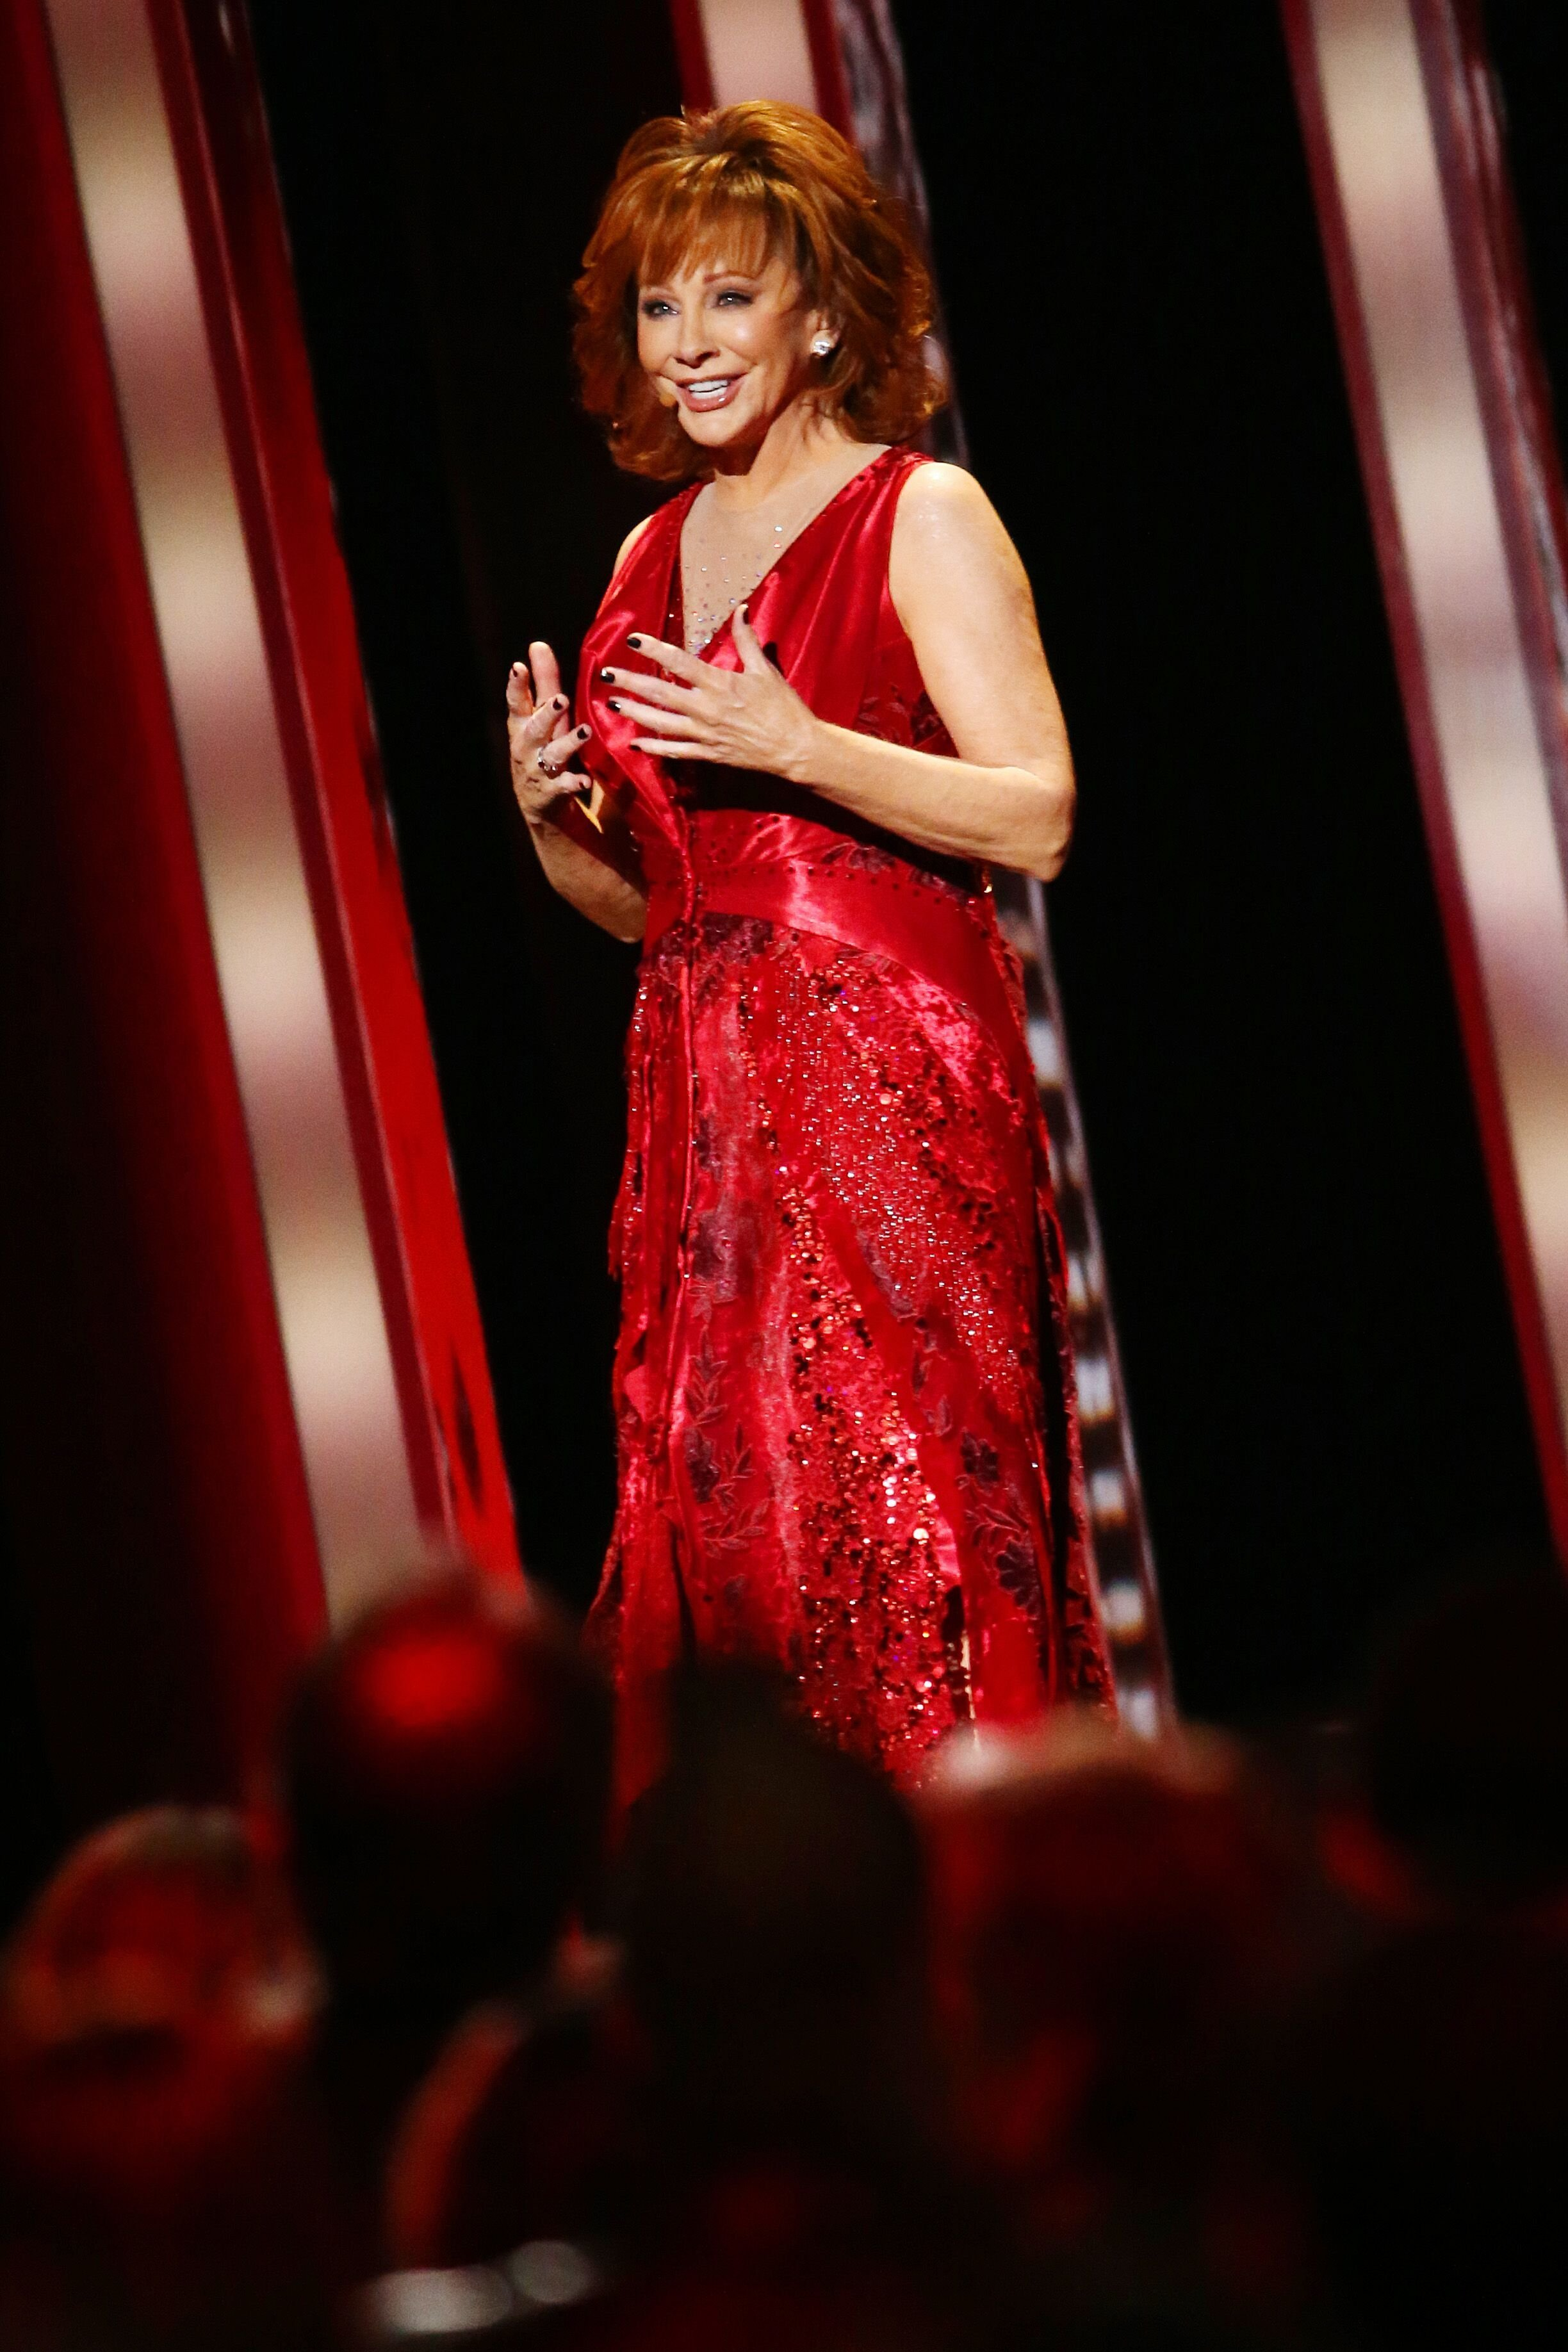 Reba McEntire performs onstage during the 53rd annual CMA Awards. | Source: Getty Images